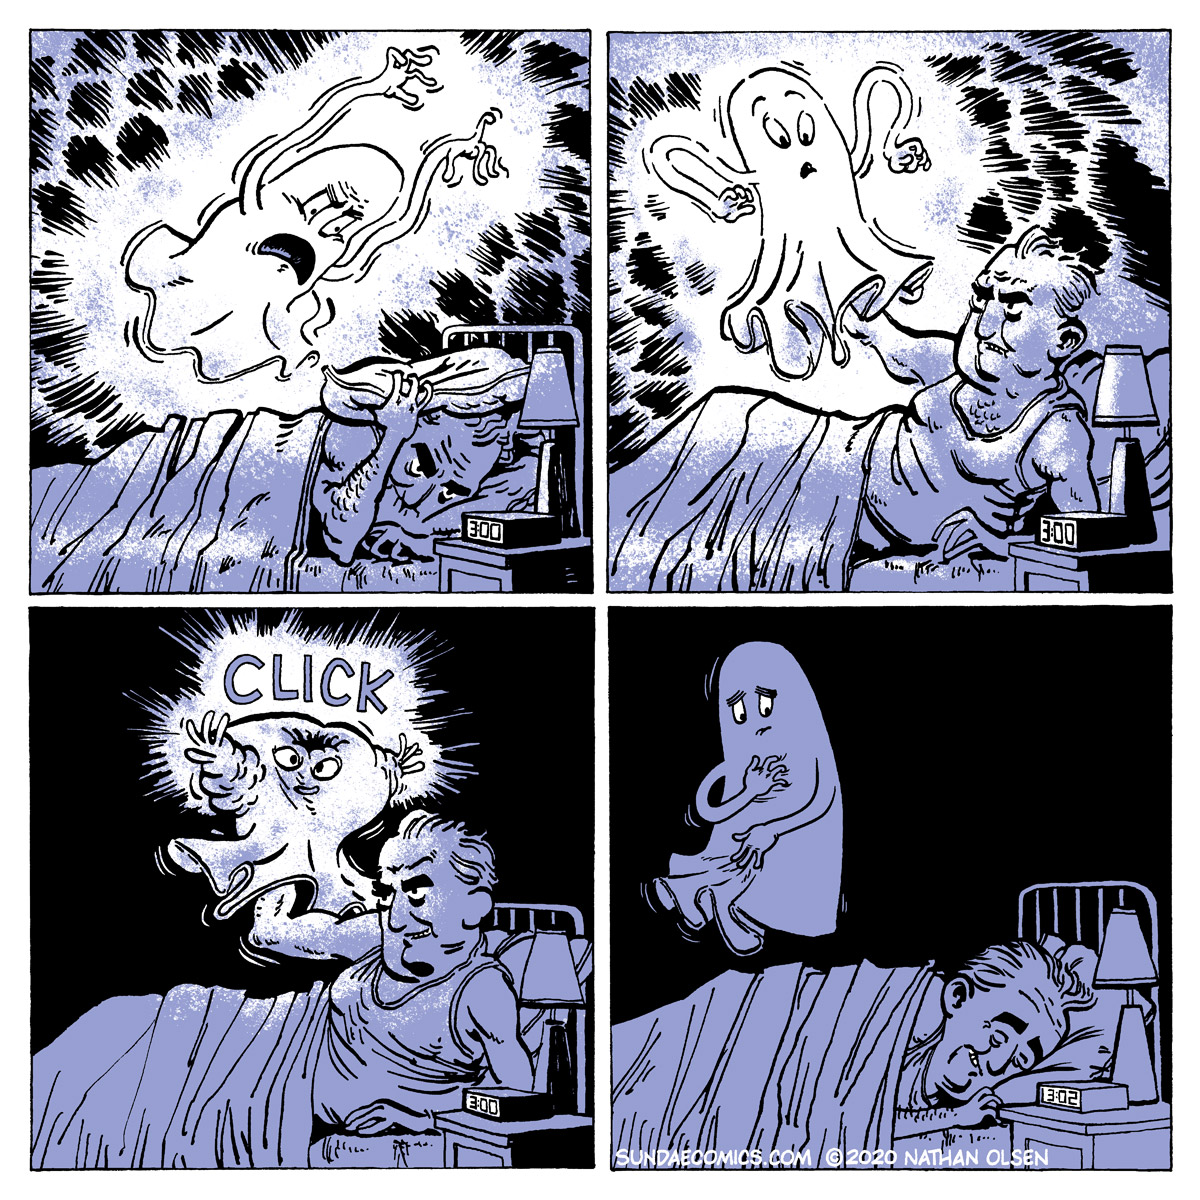 A webcomic about a tired old man whose sleep has been disturbed by a loud and obnoxious ghost.